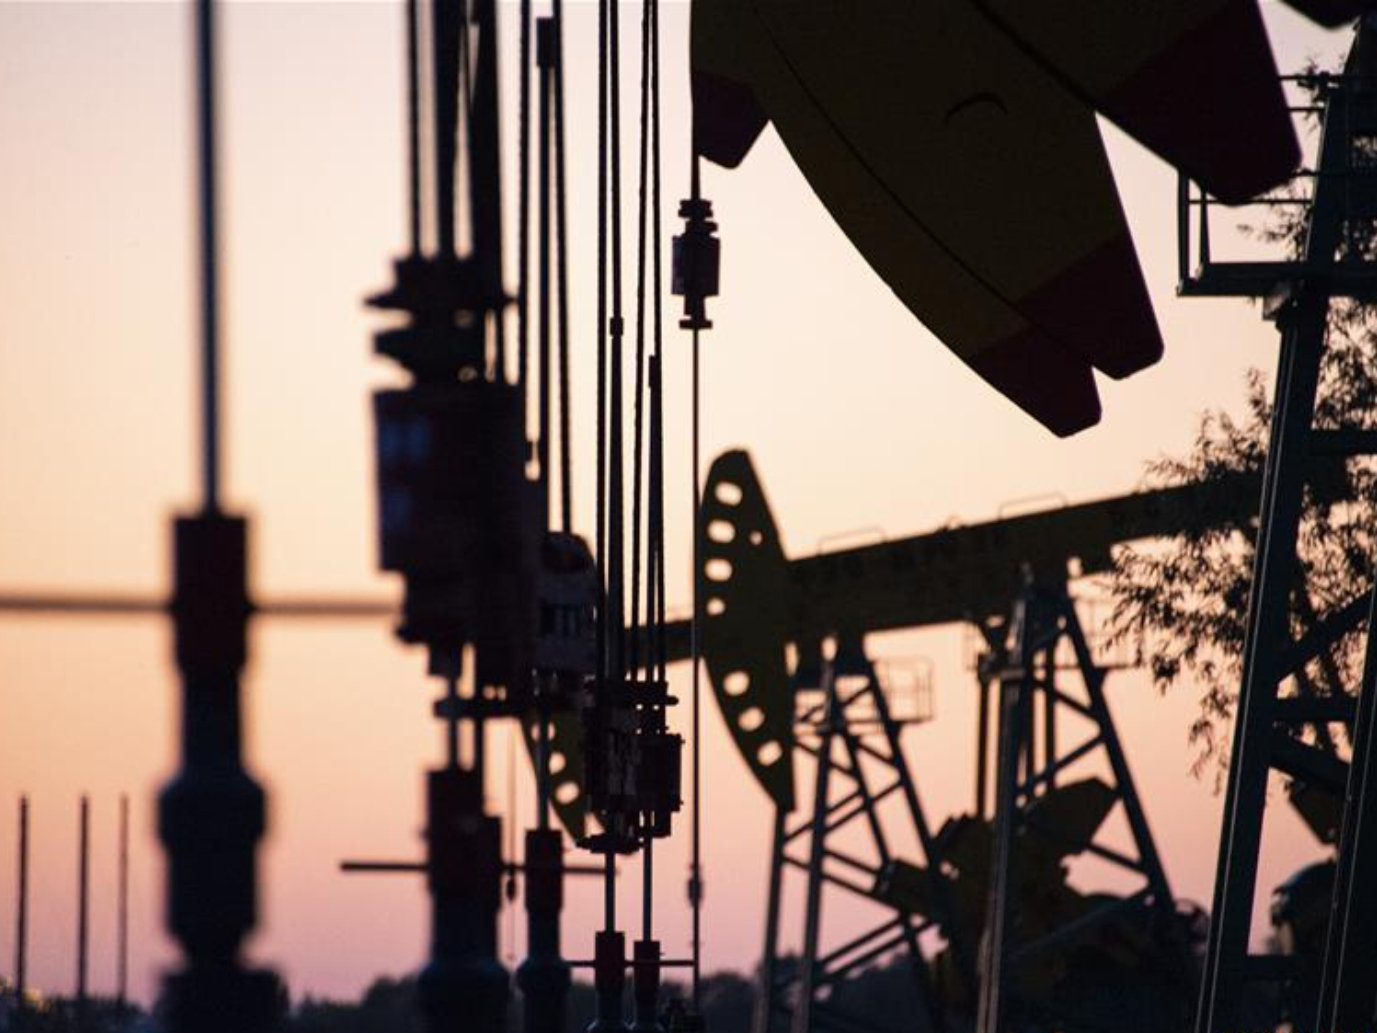 Daqing Oilfield: China's largest oil production base